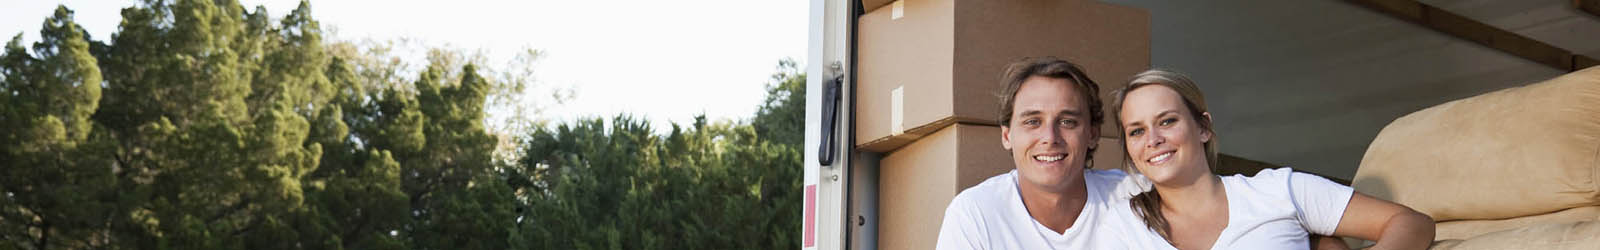 Self Storage available at Global Self Storage locations